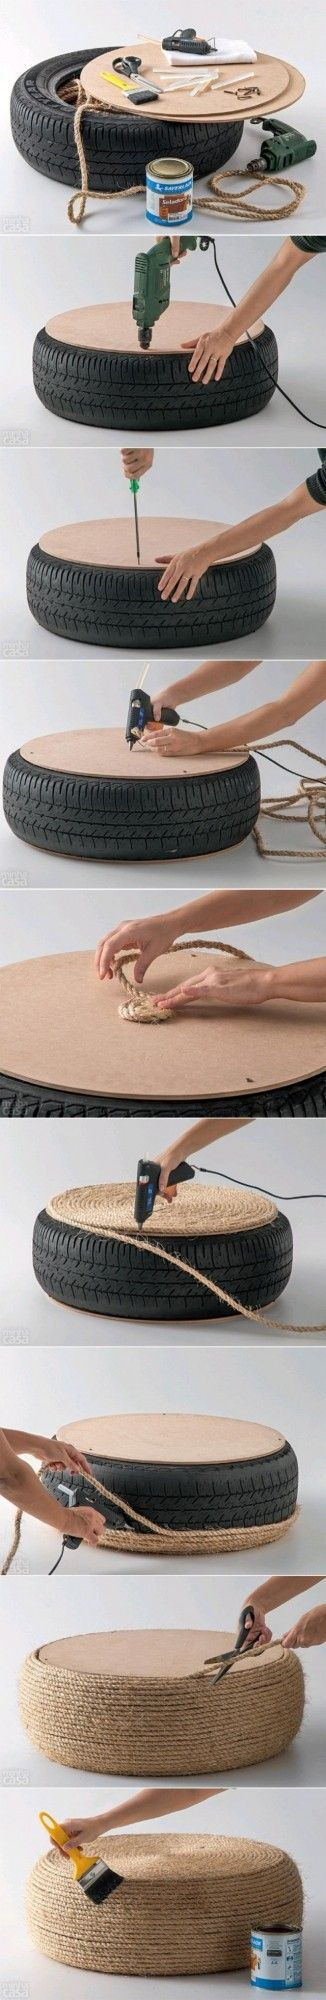 25 Insanely Clever DIY Projects - Turn an Old Tire into a Rope Ottoman